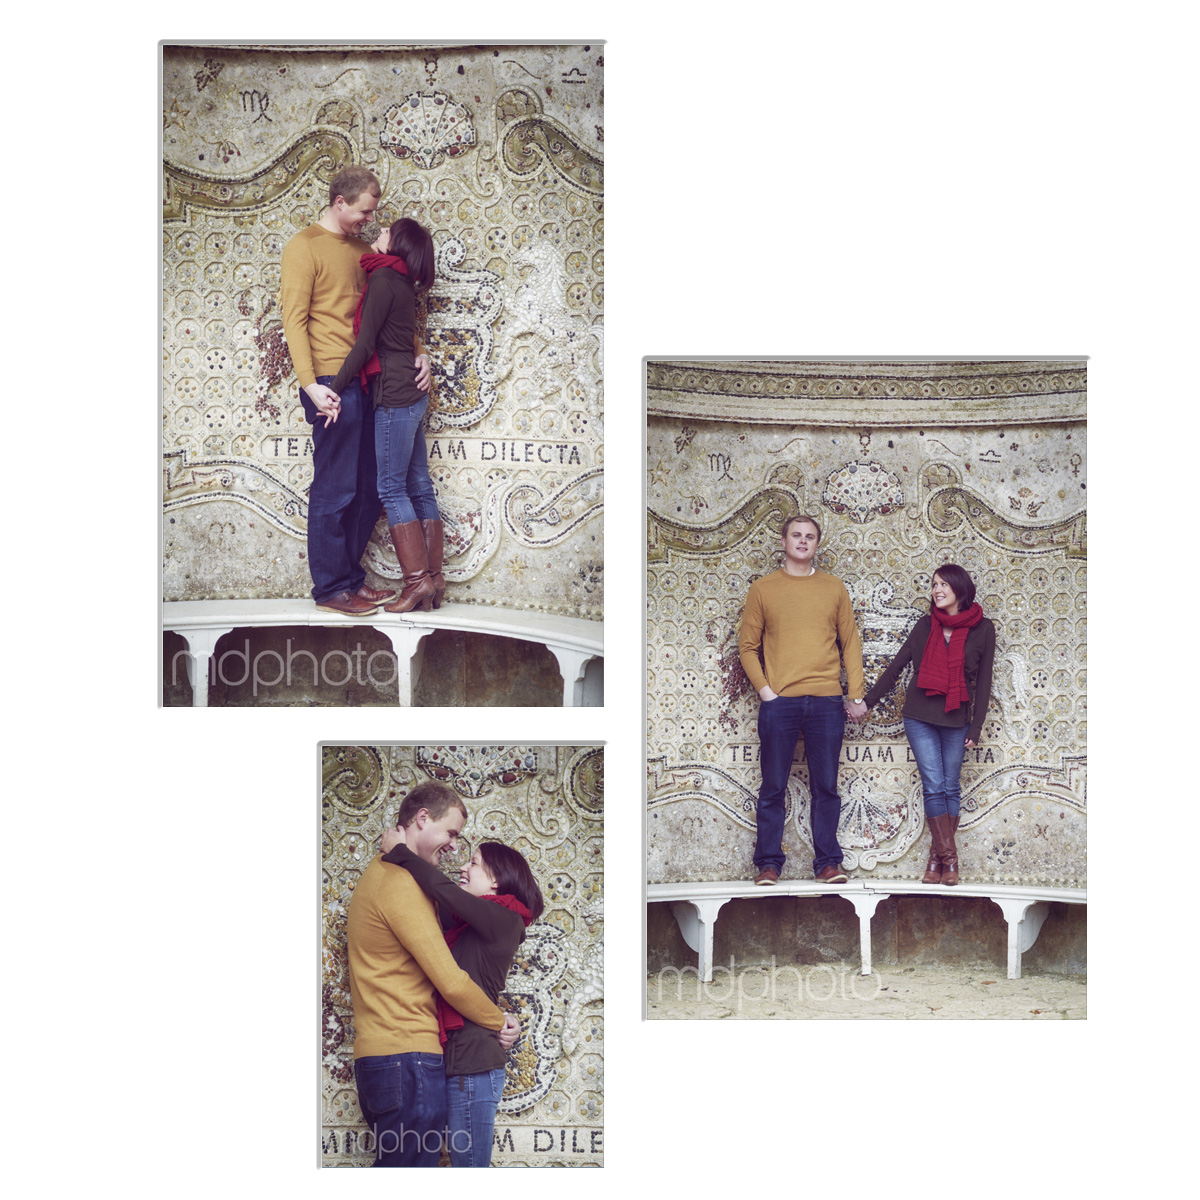 Stowe_Park_Engagement_Photo_Shoot_Ingleby_Barwick_Yarm_Wedding_mdphoto_3